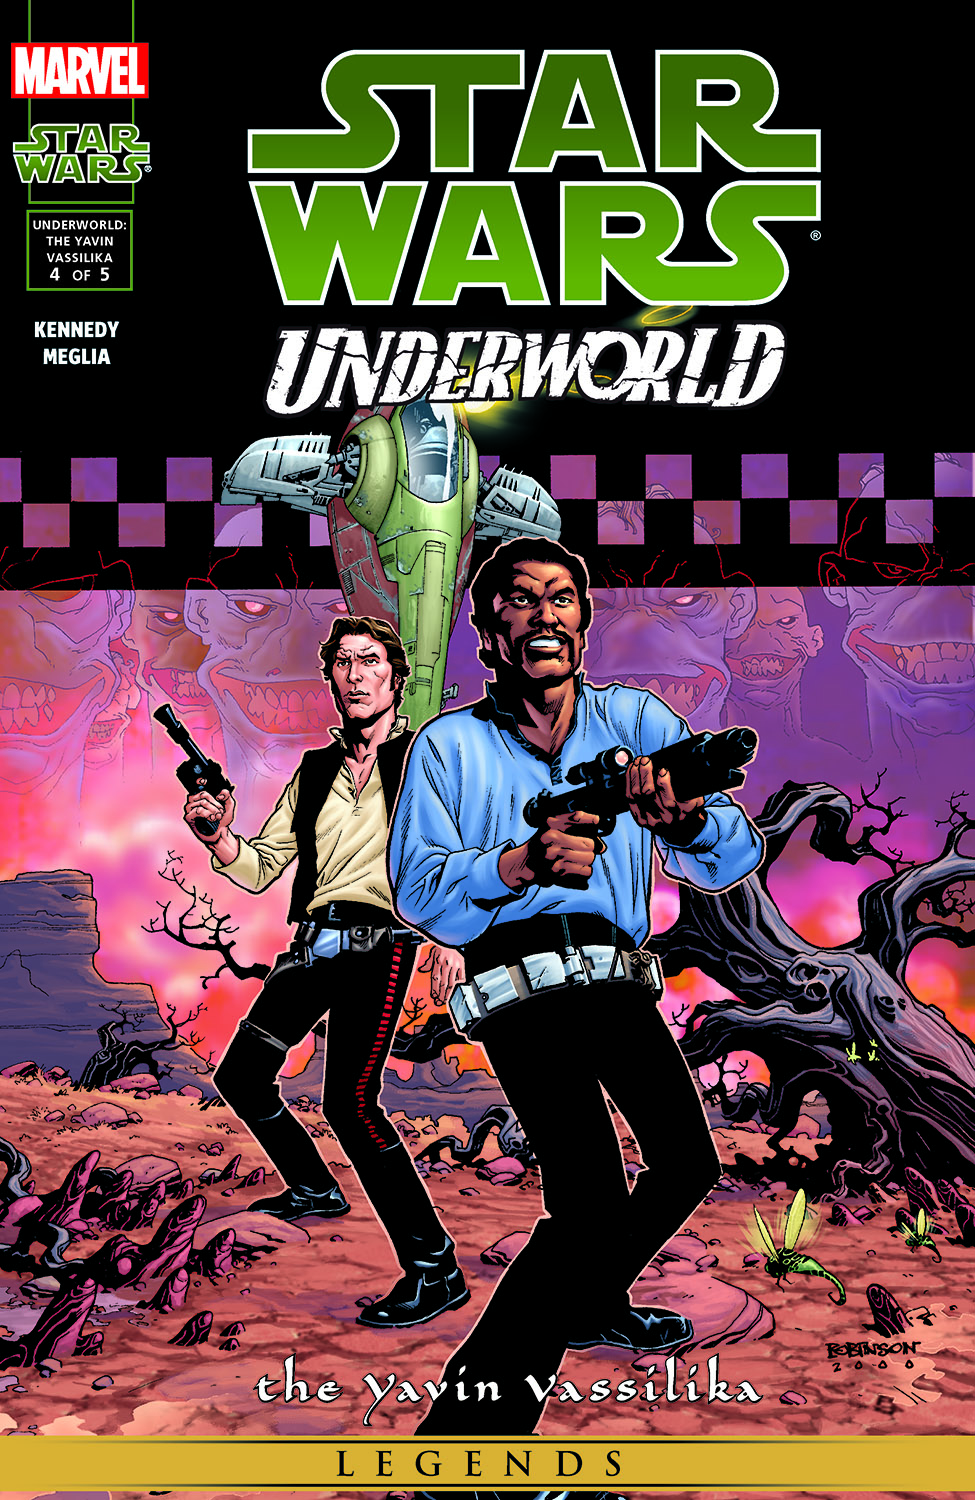 Star Wars: Underworld - The Yavin Vassilika (2000) #4